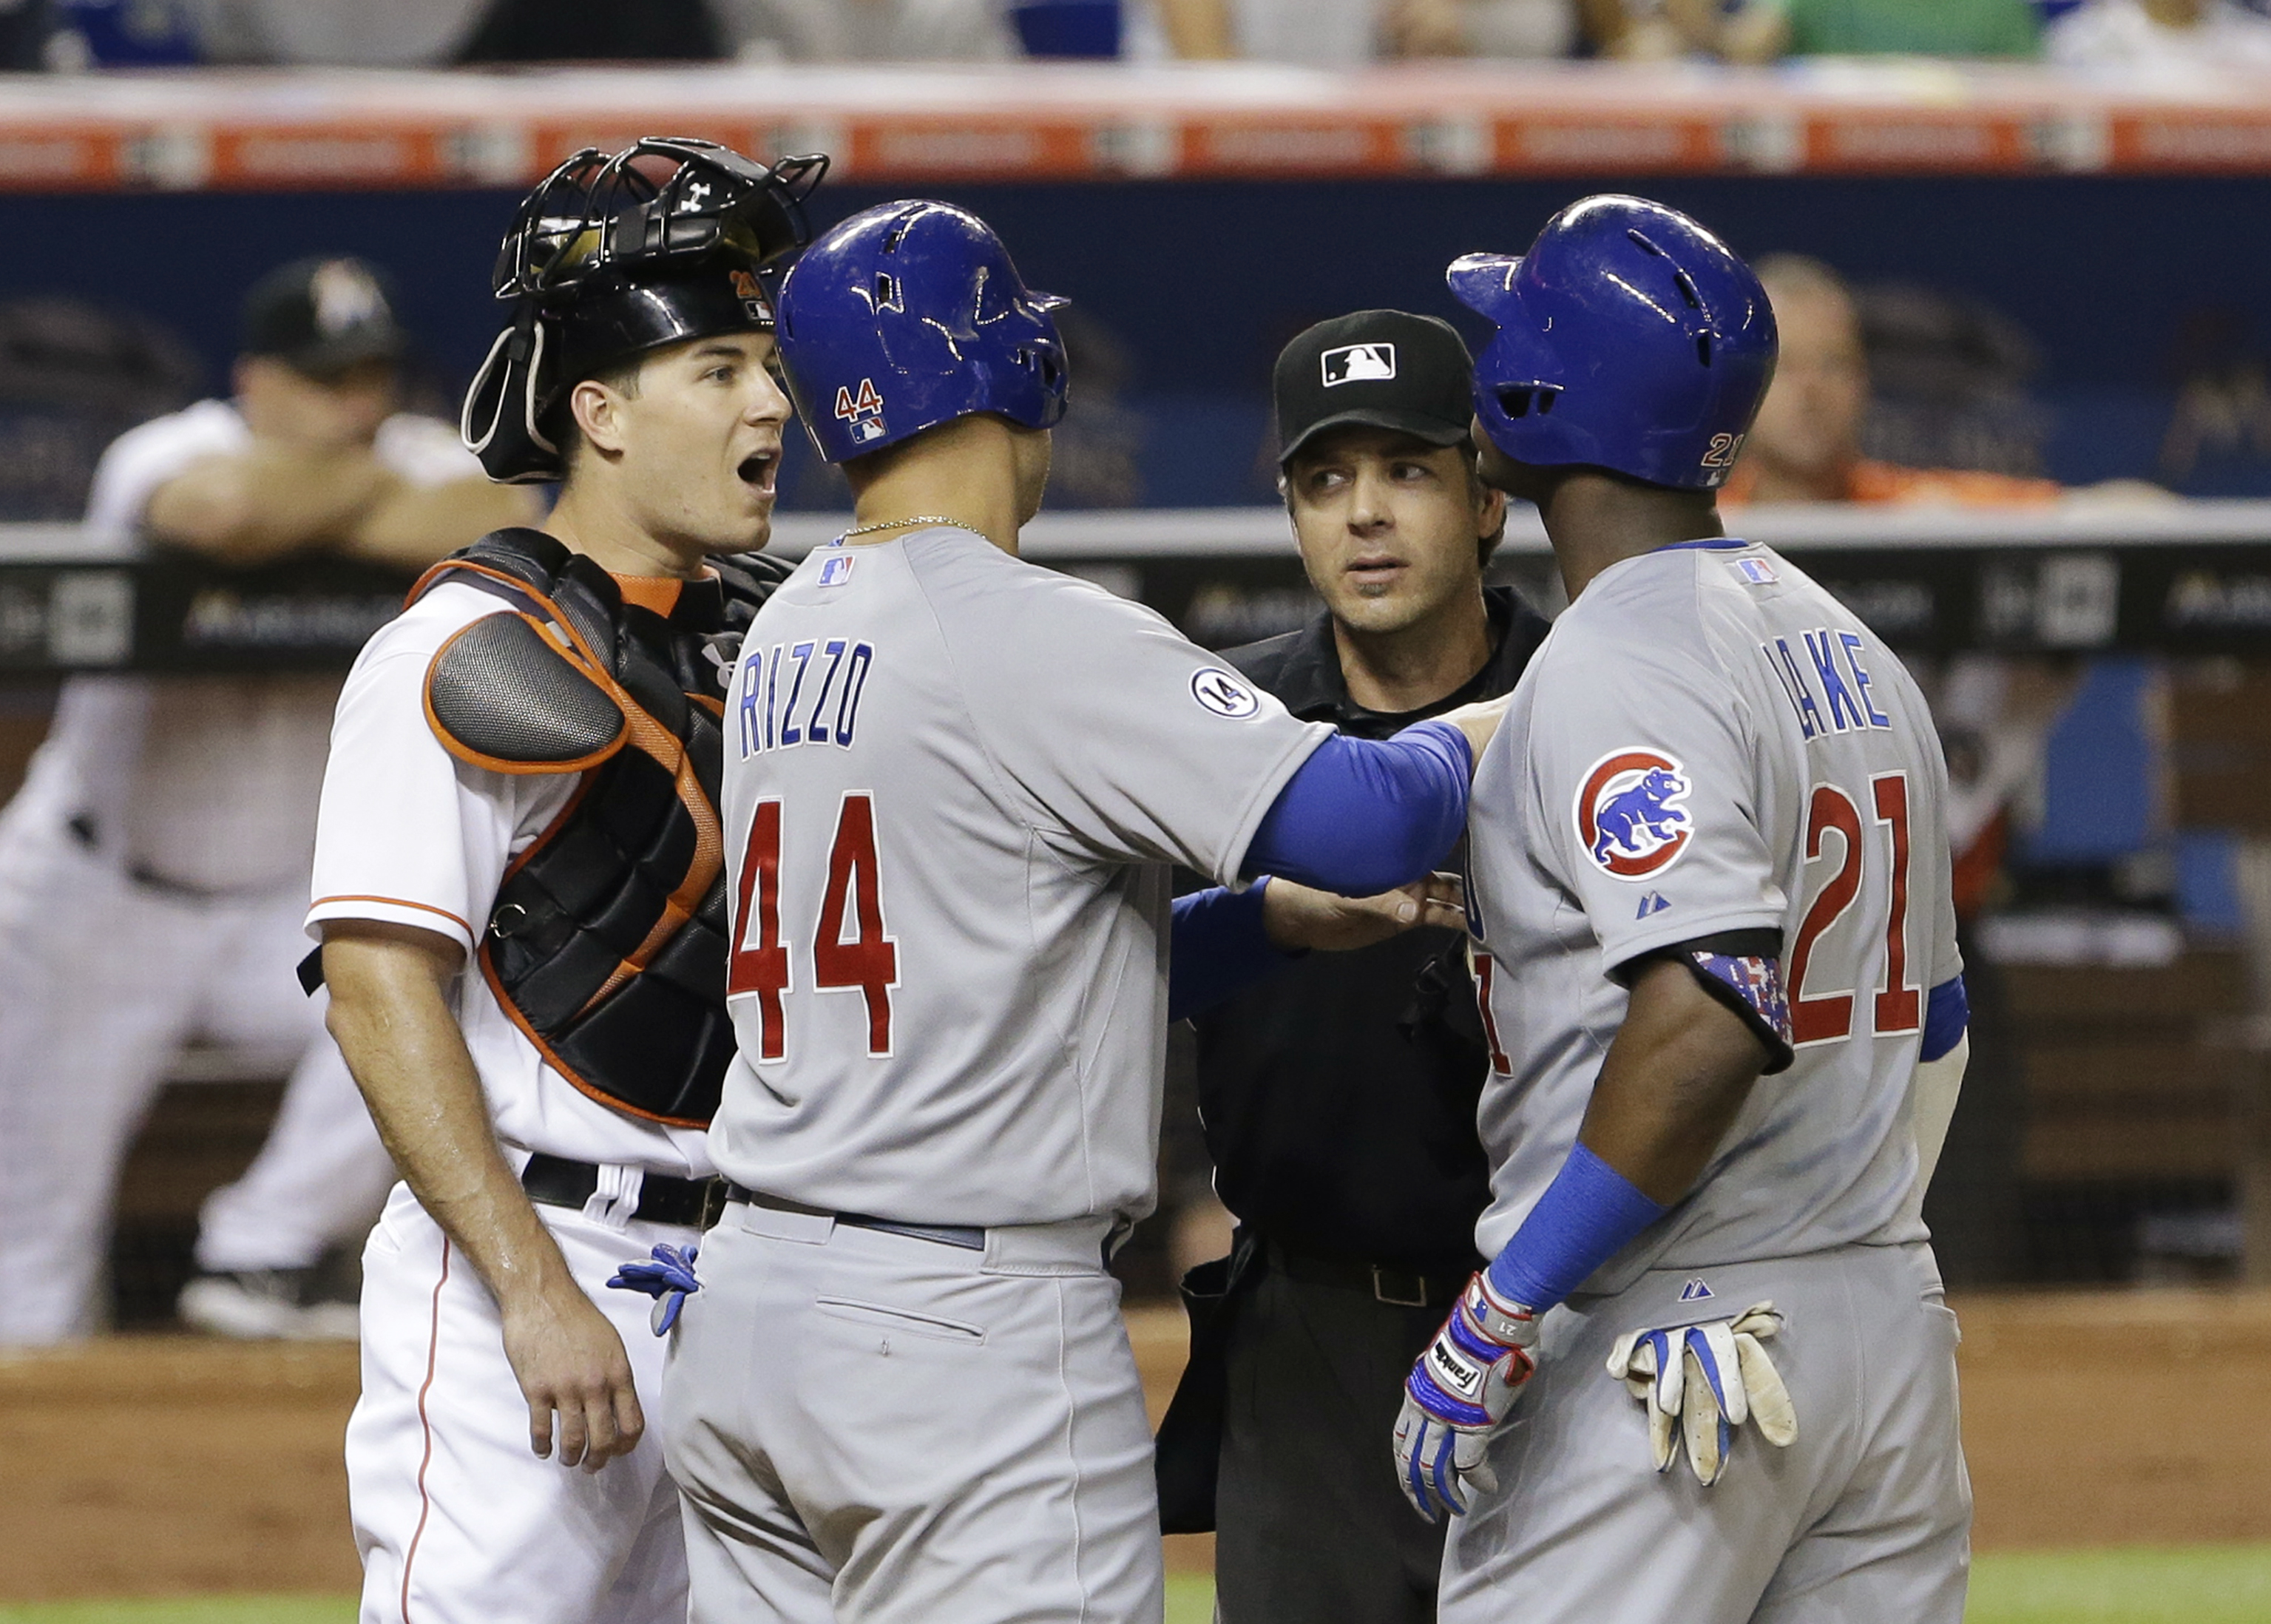 Chicago Cubs' Anthony Rizzo (44) and home plate umpire James Hoye, second from right, hold back Junior Lake (21) as Lake and Miami Marlins catcher J.T. Realmuto, left, exchange words after Lake hit a home run scoring Rizzo during the sixth inning of a bas